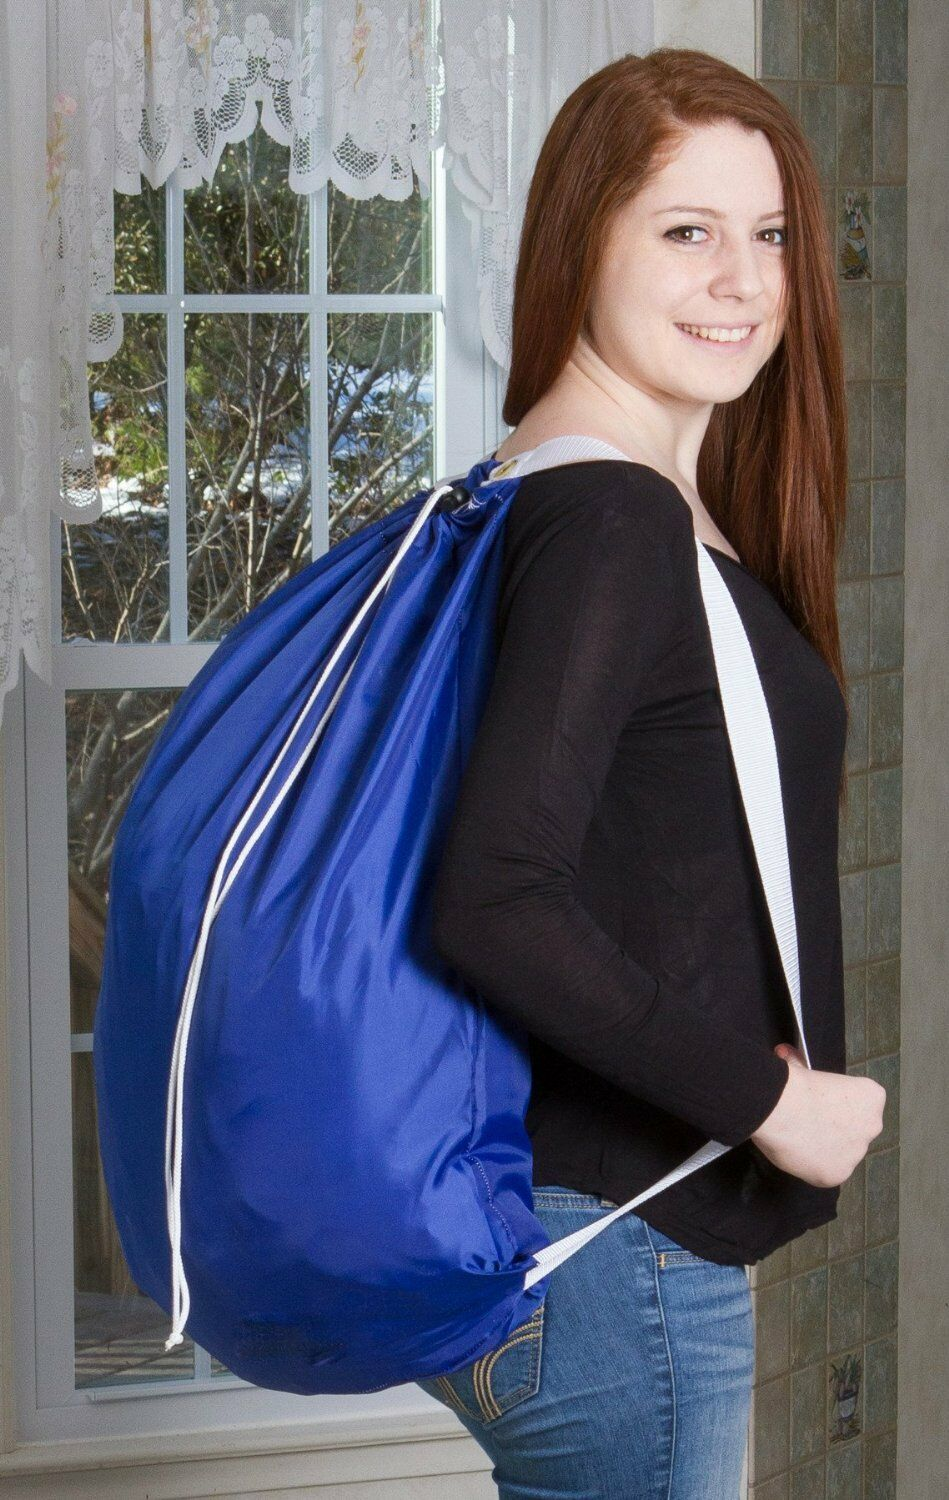 Backpack Laundry Bag - Durable Nylon Material - Two Shoulder